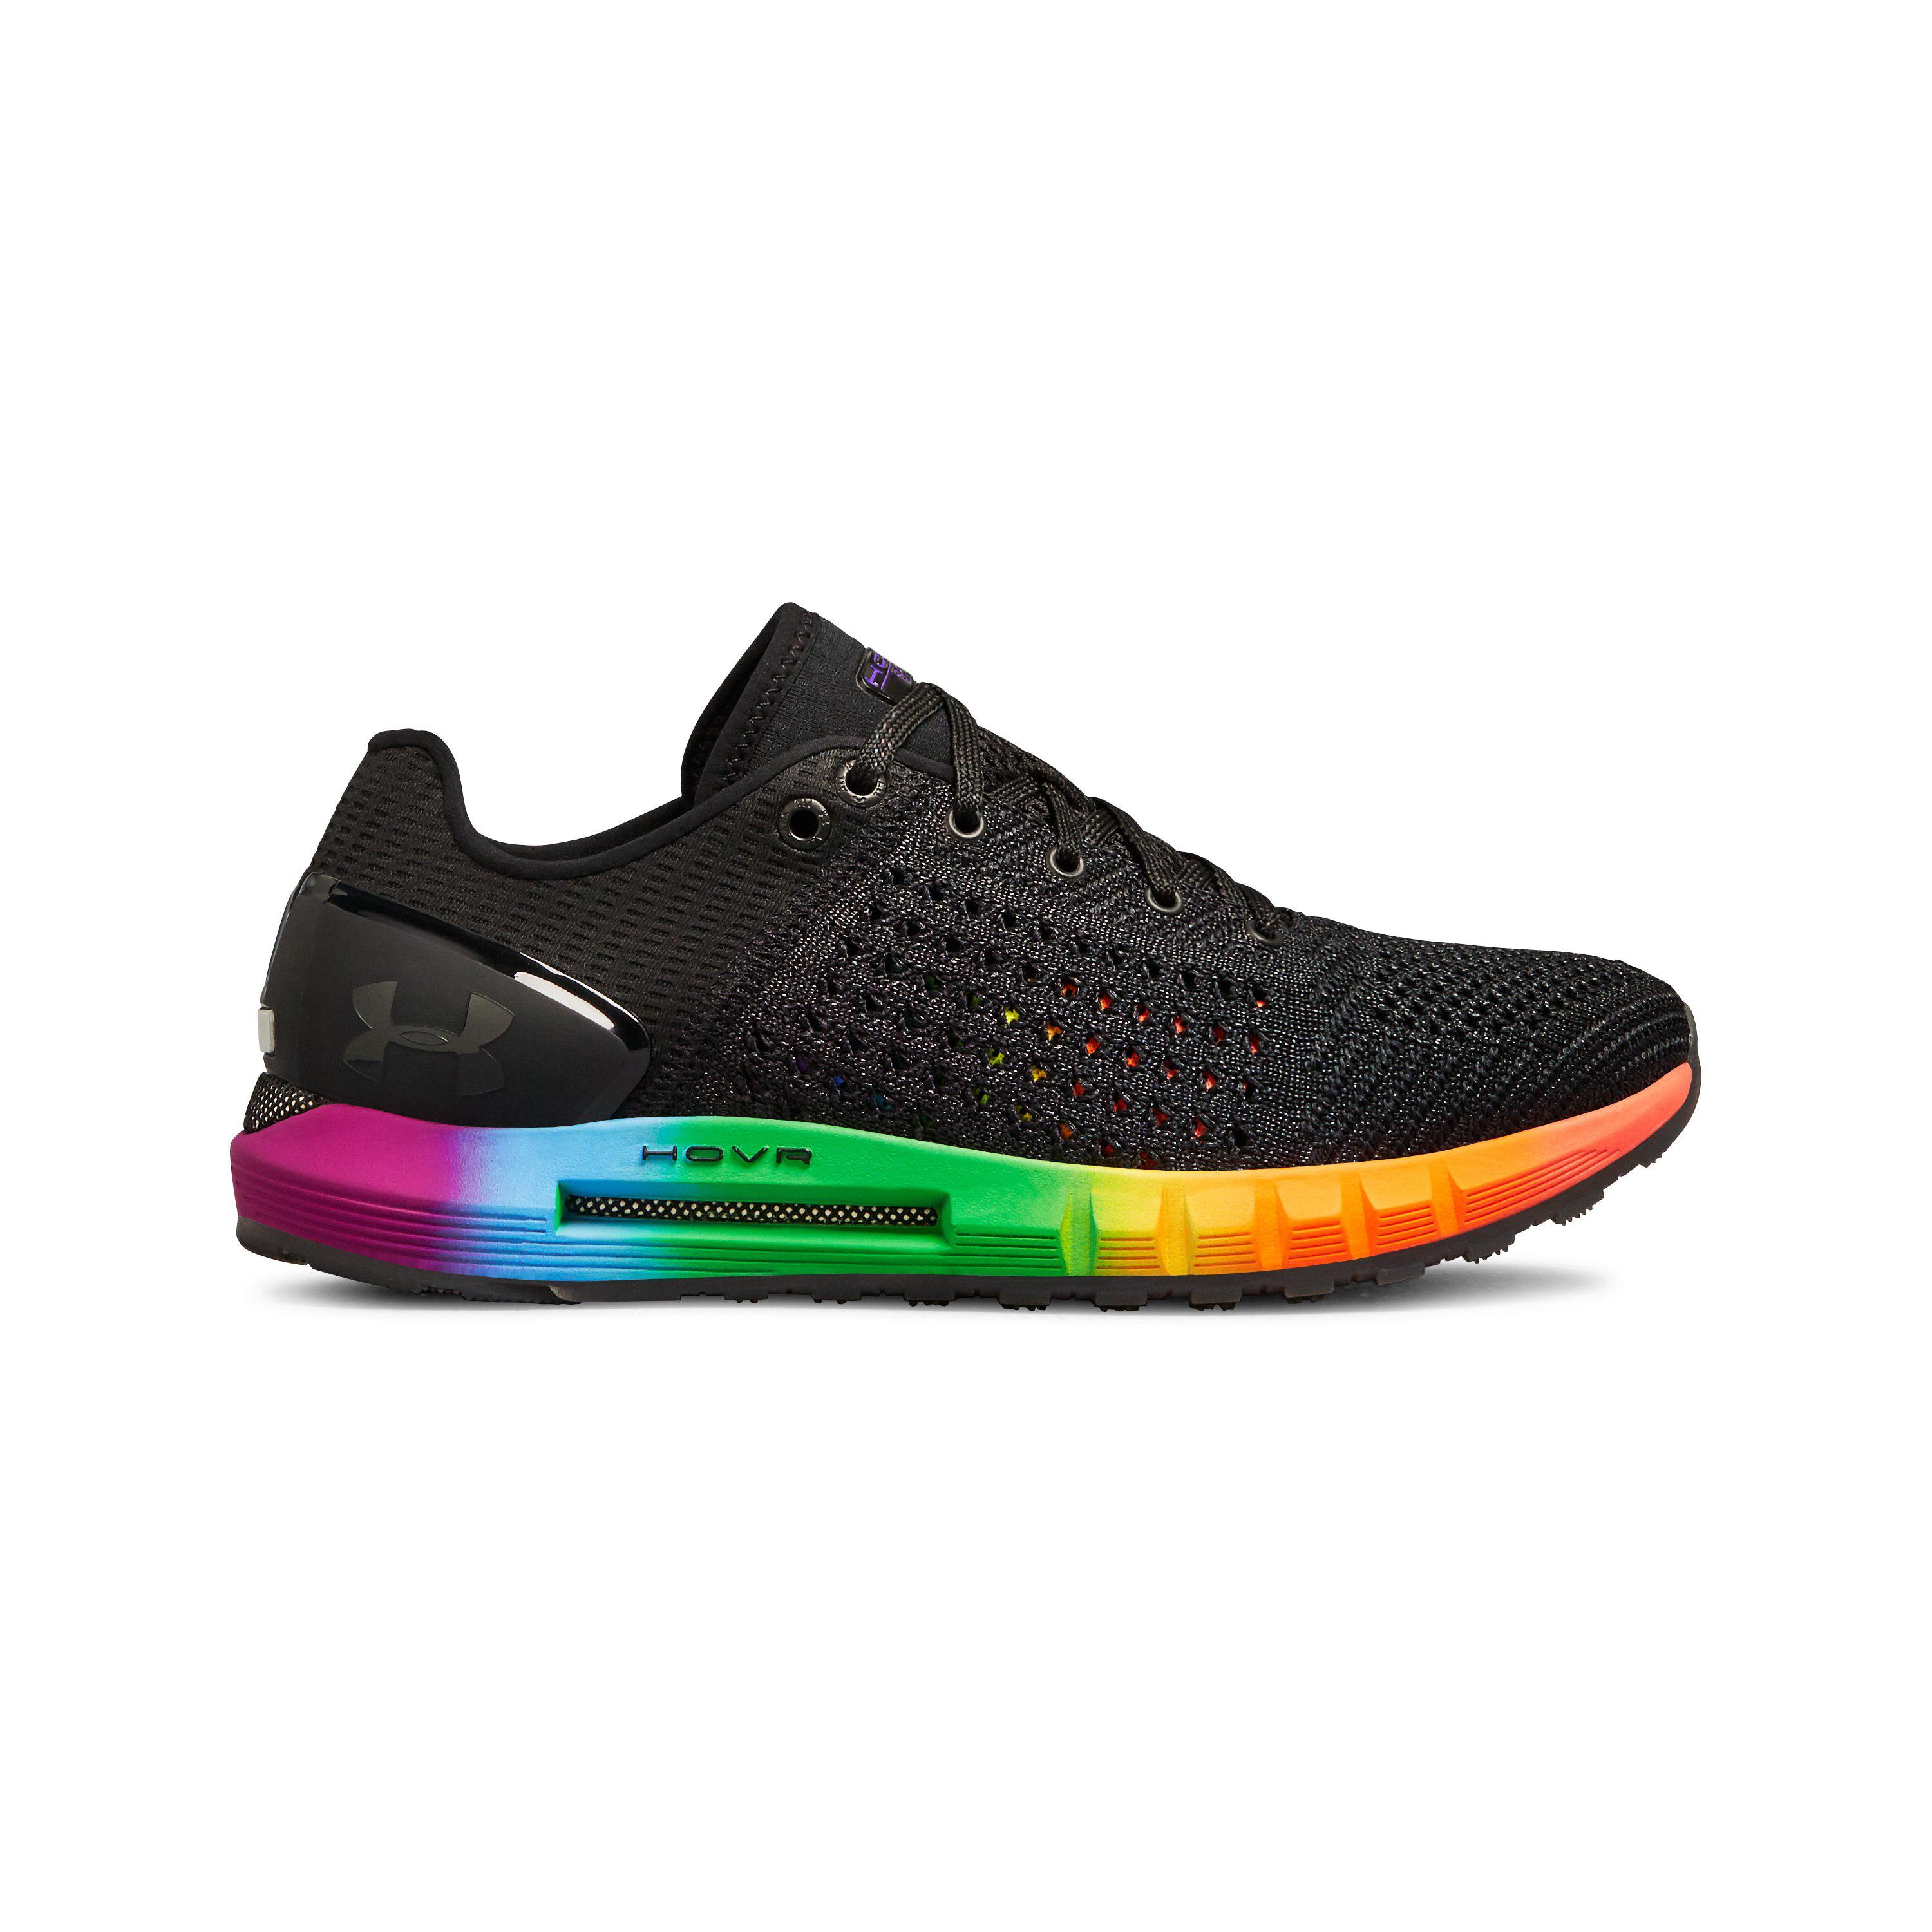 Pride Edition Running Shoes in Black